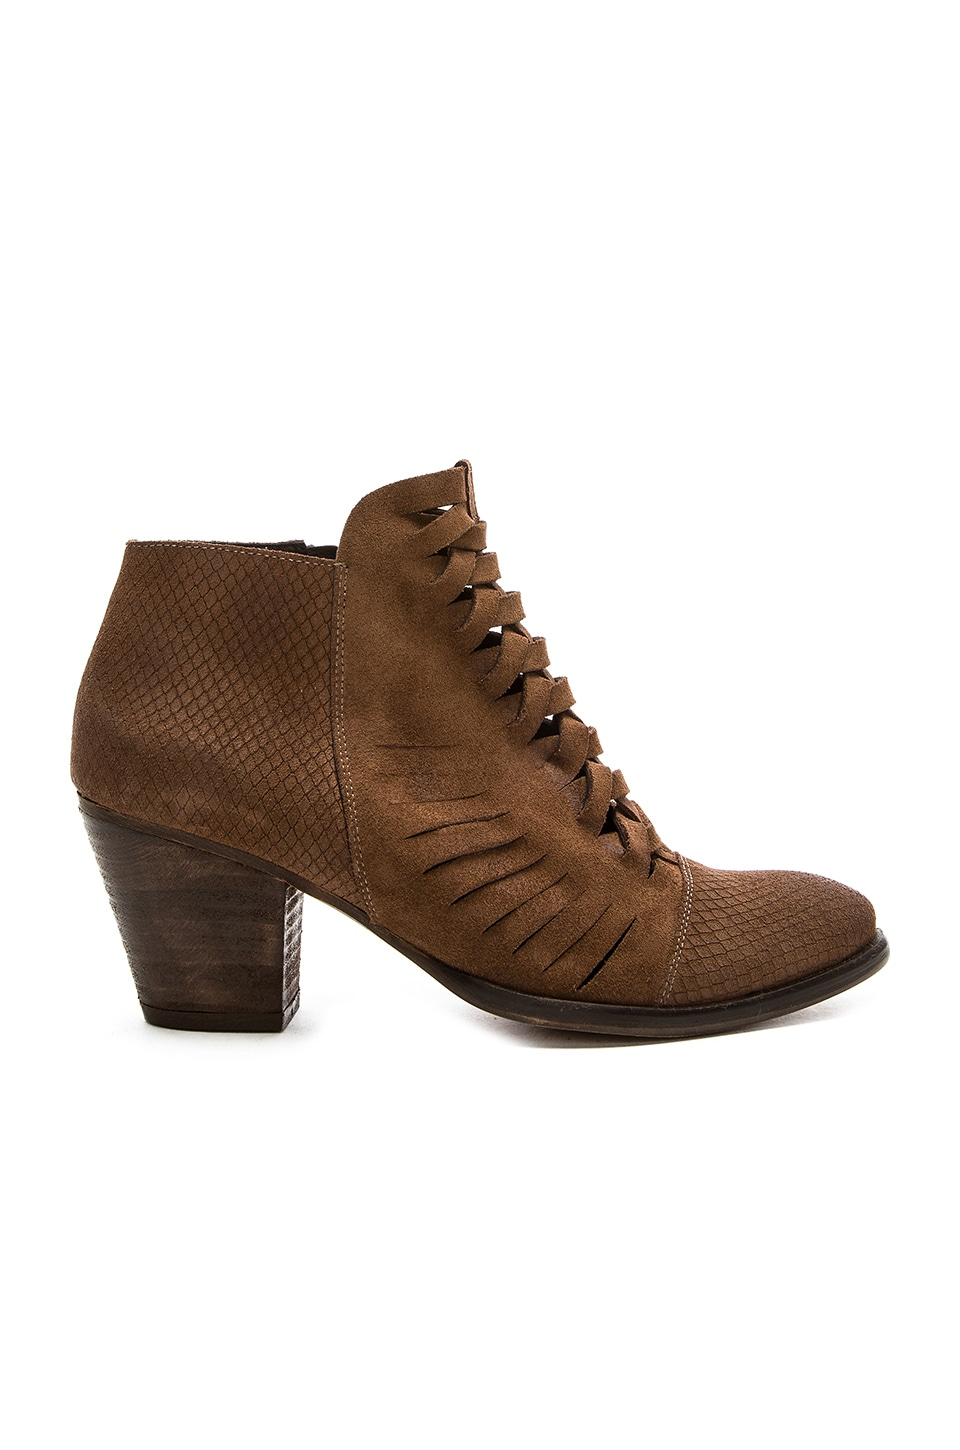 Loveland Ankle Bootie by Free People